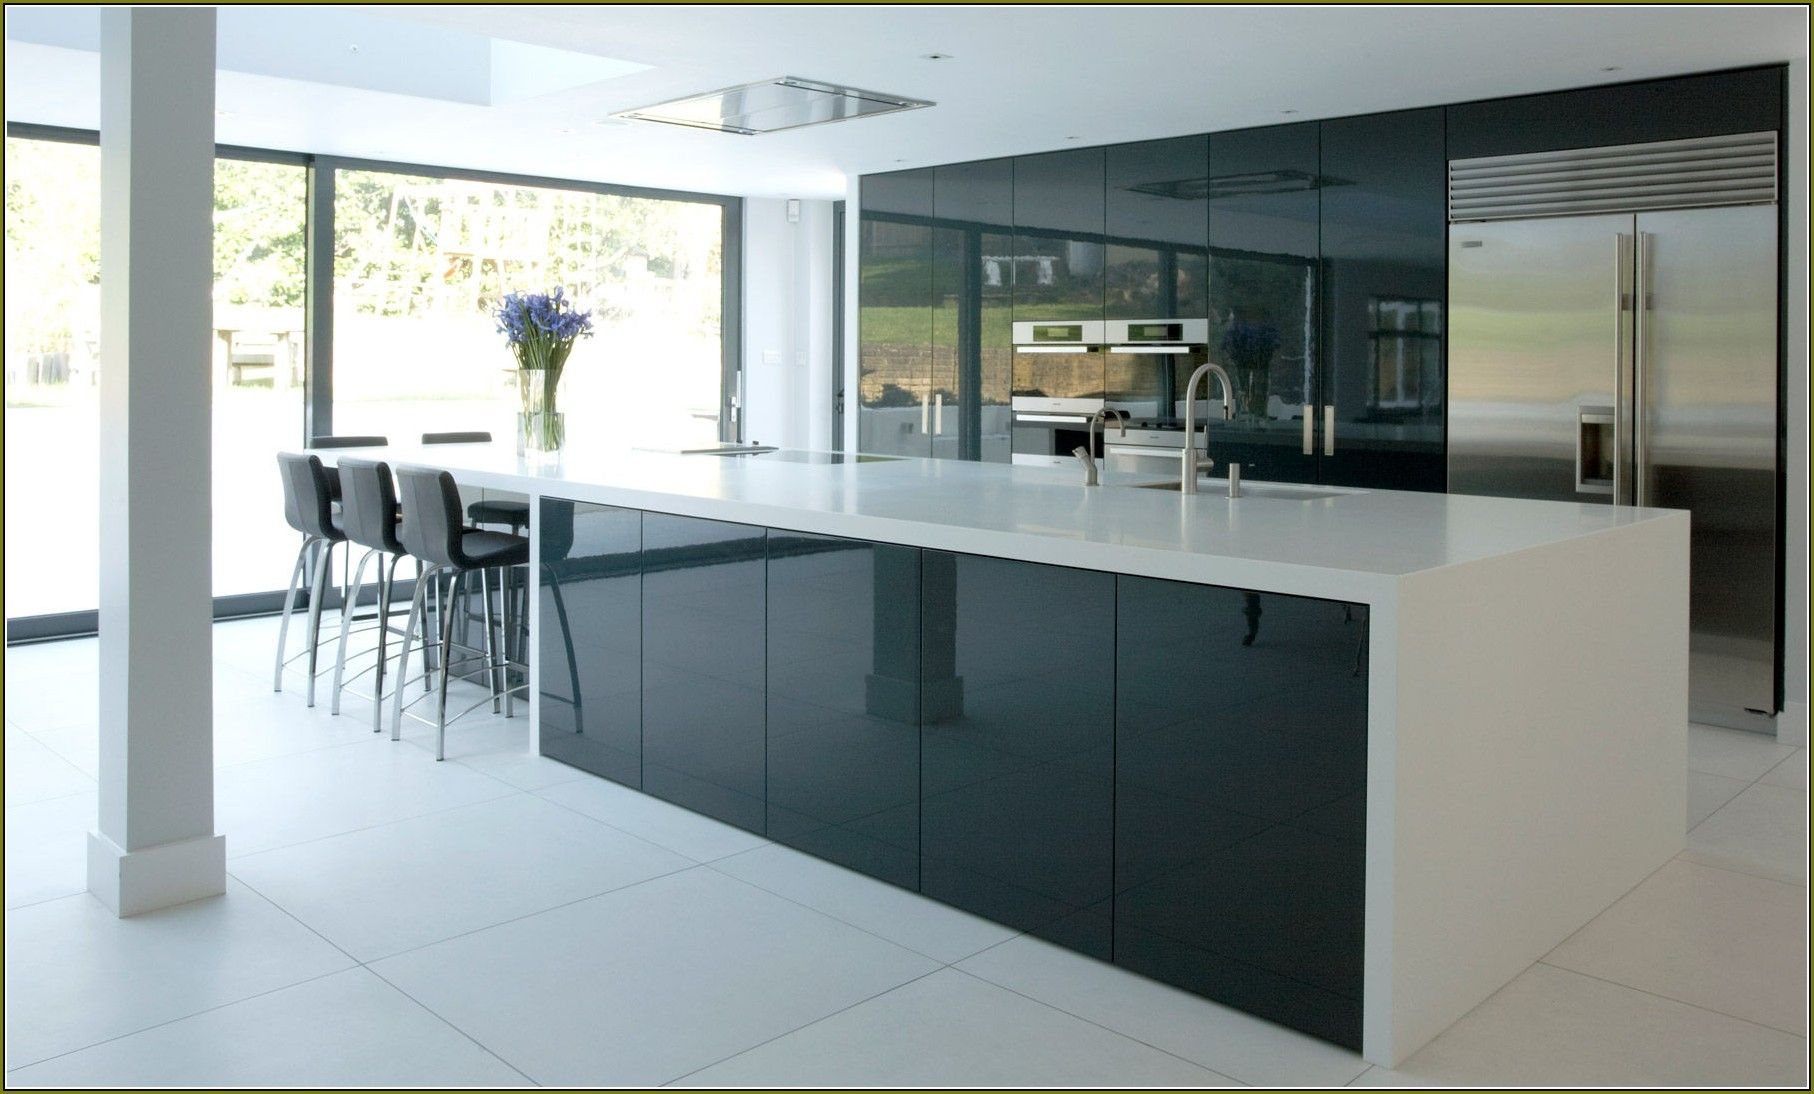 modest scheme of high gloss kitchen doors ikea kitchen cabinet doors high gloss black with vibrant ideas kitchen extensions pinterest high gloss. beautiful ideas. Home Design Ideas